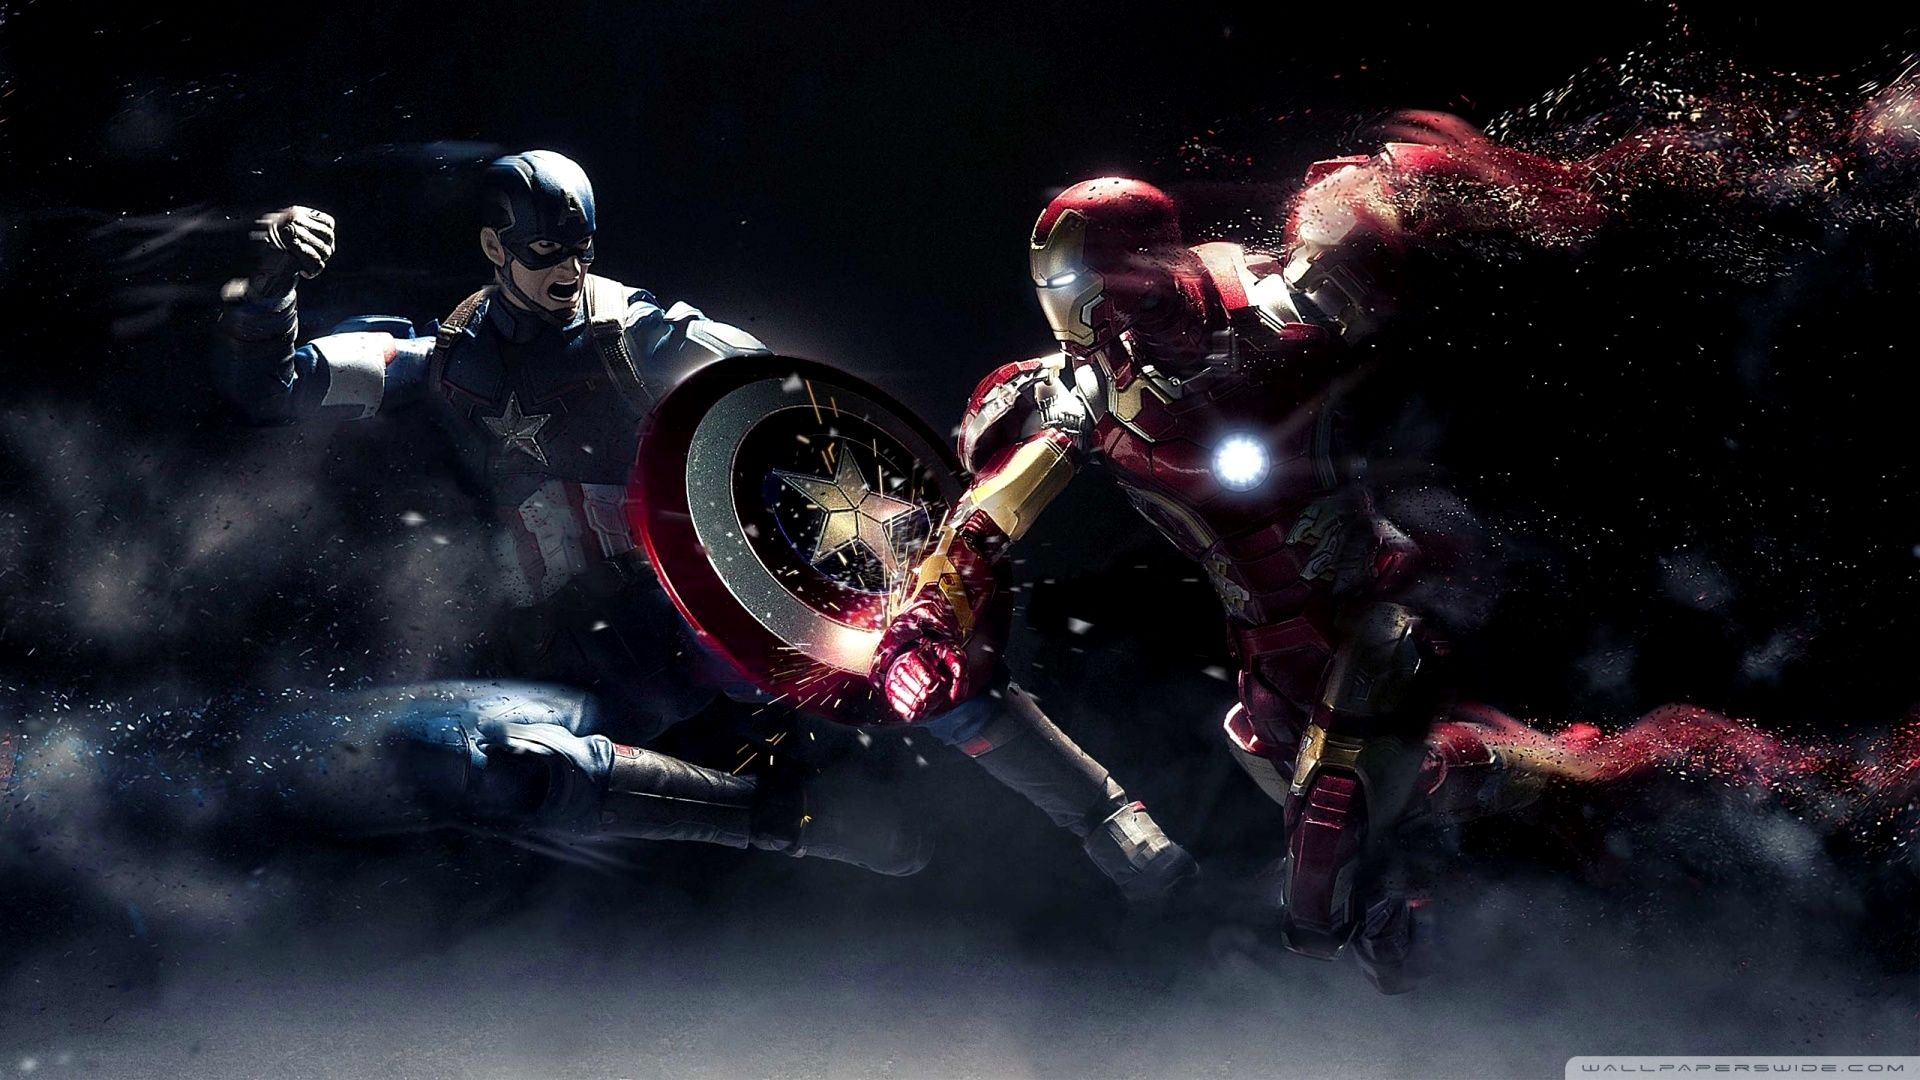 4k Wallpaper For Pc Of Iron Man Gallery In 2020 Captain America Wallpaper Iron Man Wallpaper 4k Wallpapers For Pc